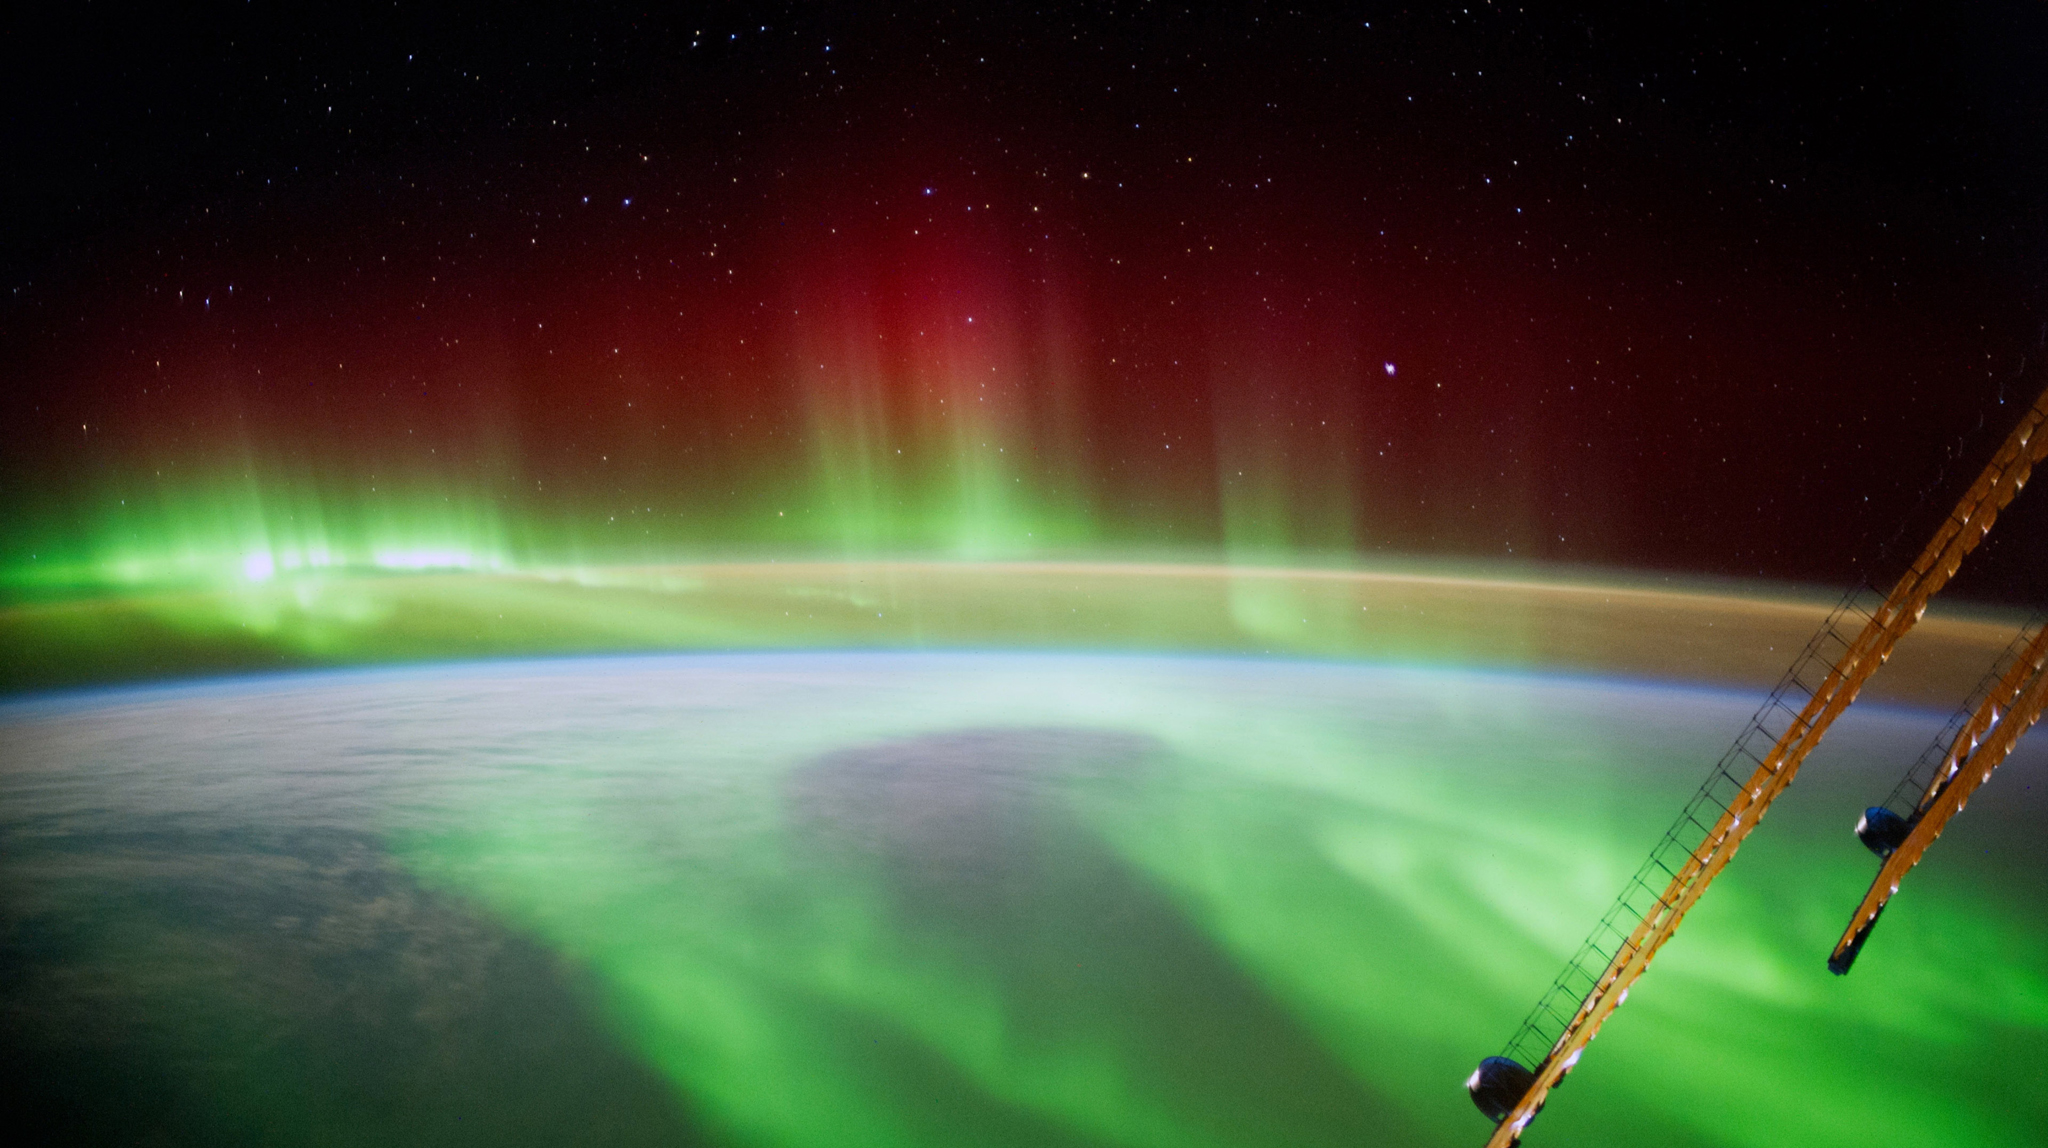 German Astronaut Alexander Gerst Aboard The International Space Station...IN SPACE - SEPTEMBER 9: (EDITORIAL USE ONLY) In this handout photo provided by the European Space Agency (ESA) on September 9, 2014, German ESA astronaut Alexander Gerst took this image of an aurora as he circled Earth whilst aboard the International Space Station (ISS). Gerst returned to earth on November 10, 2014 after spending six months on the International Space Station completing an extensive scientific programme, known as the 'Blue Dot' mission (after astronomer Carl Sagan's description of Earth, as seen on a photograph taken by the Voyager probe from six billion kilometres away). (Photo by Alexander Gerst / ESA via Getty Images)